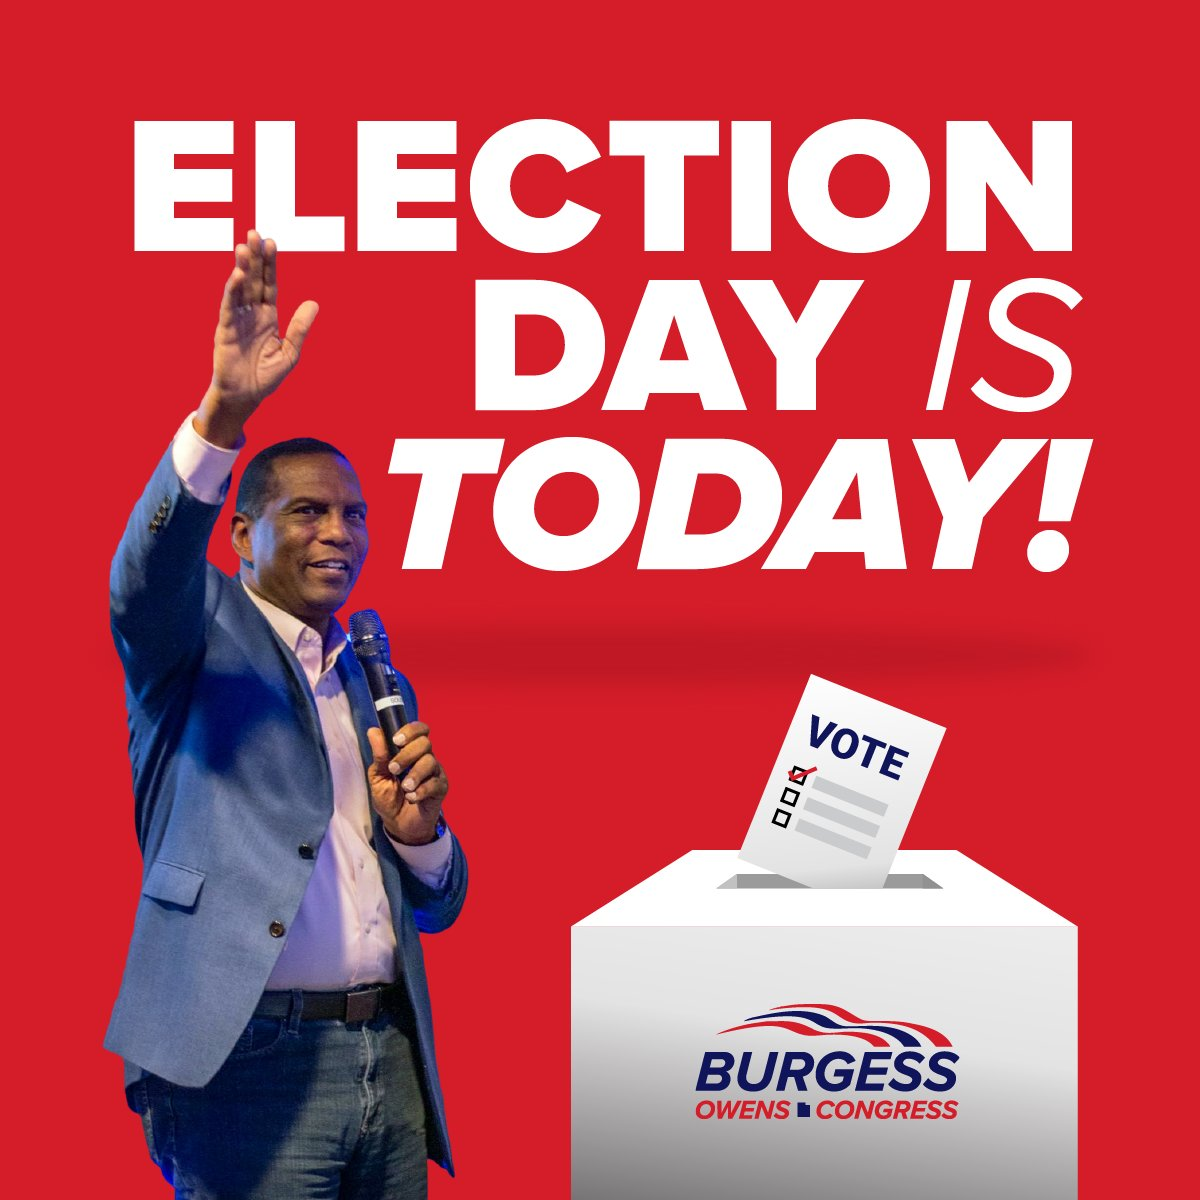 Today is the day! Be sure to get your ballots in if you have yet to vote and LET'S WIN THIS THING! #UT04